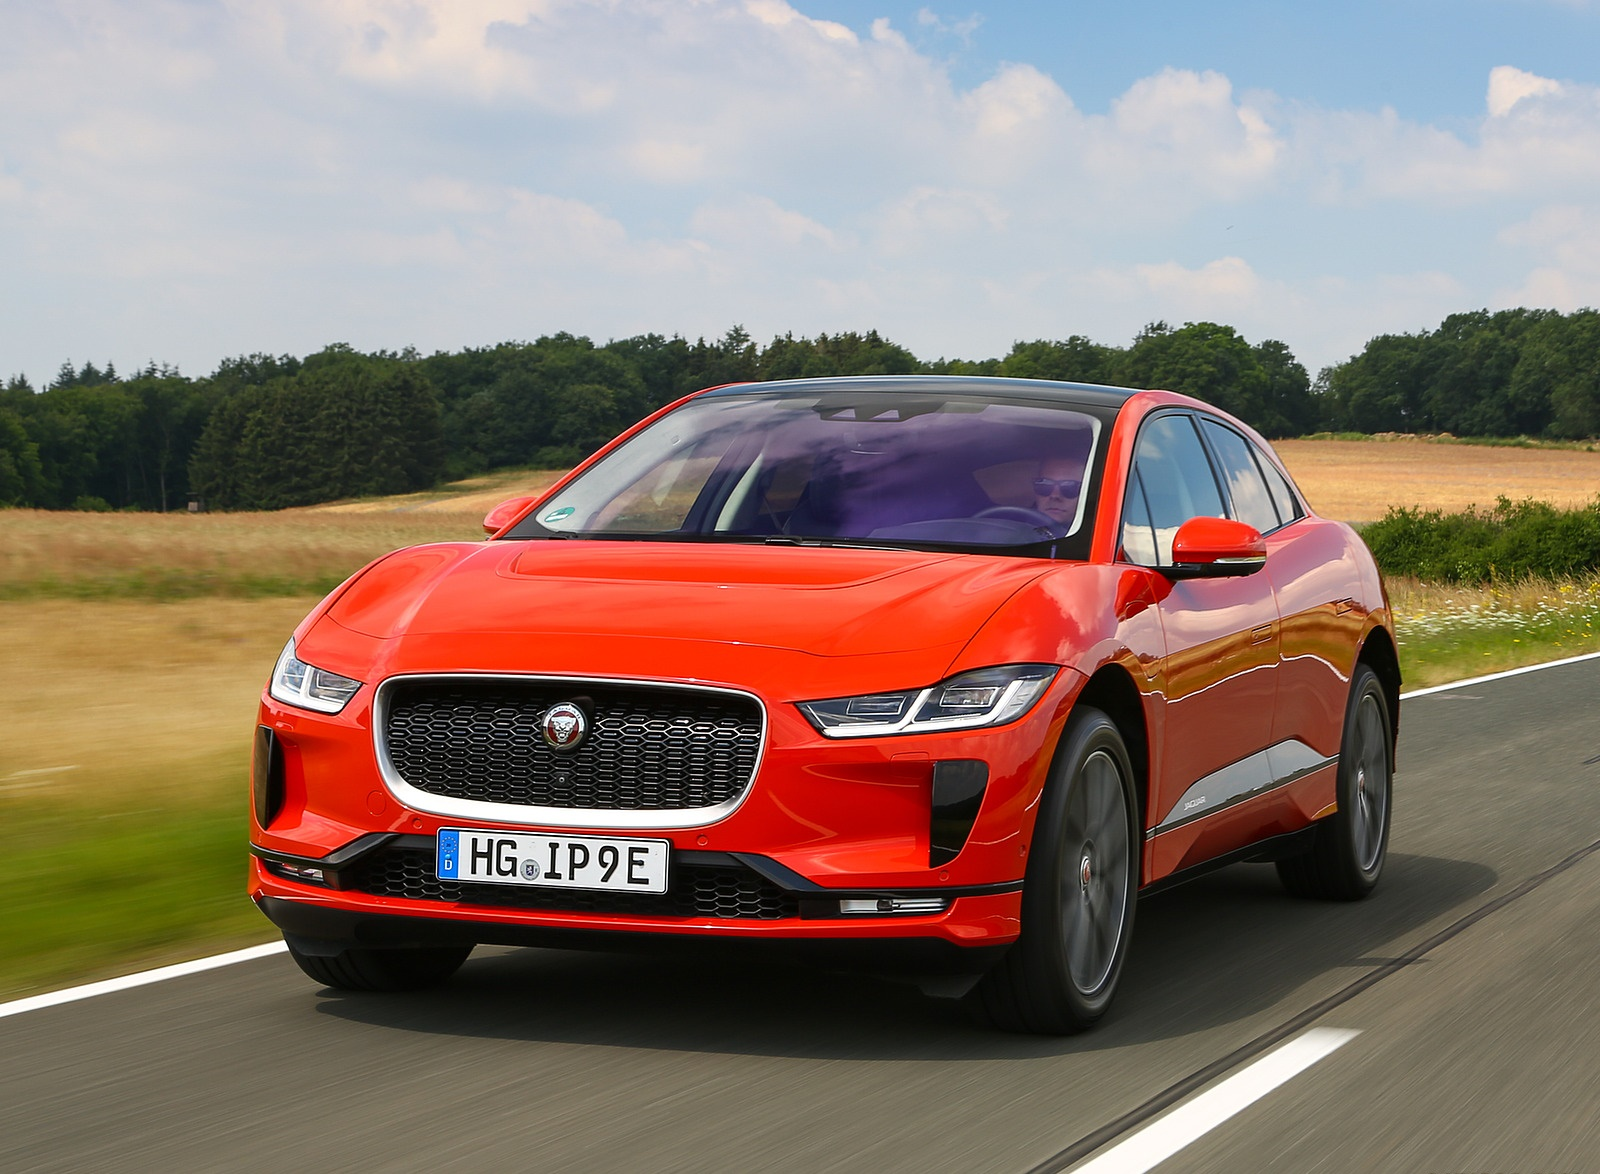 2019 Jaguar I-PACE EV400 AWD HSE First Edition (Color: Photon Red) Front Wallpapers #7 of 192